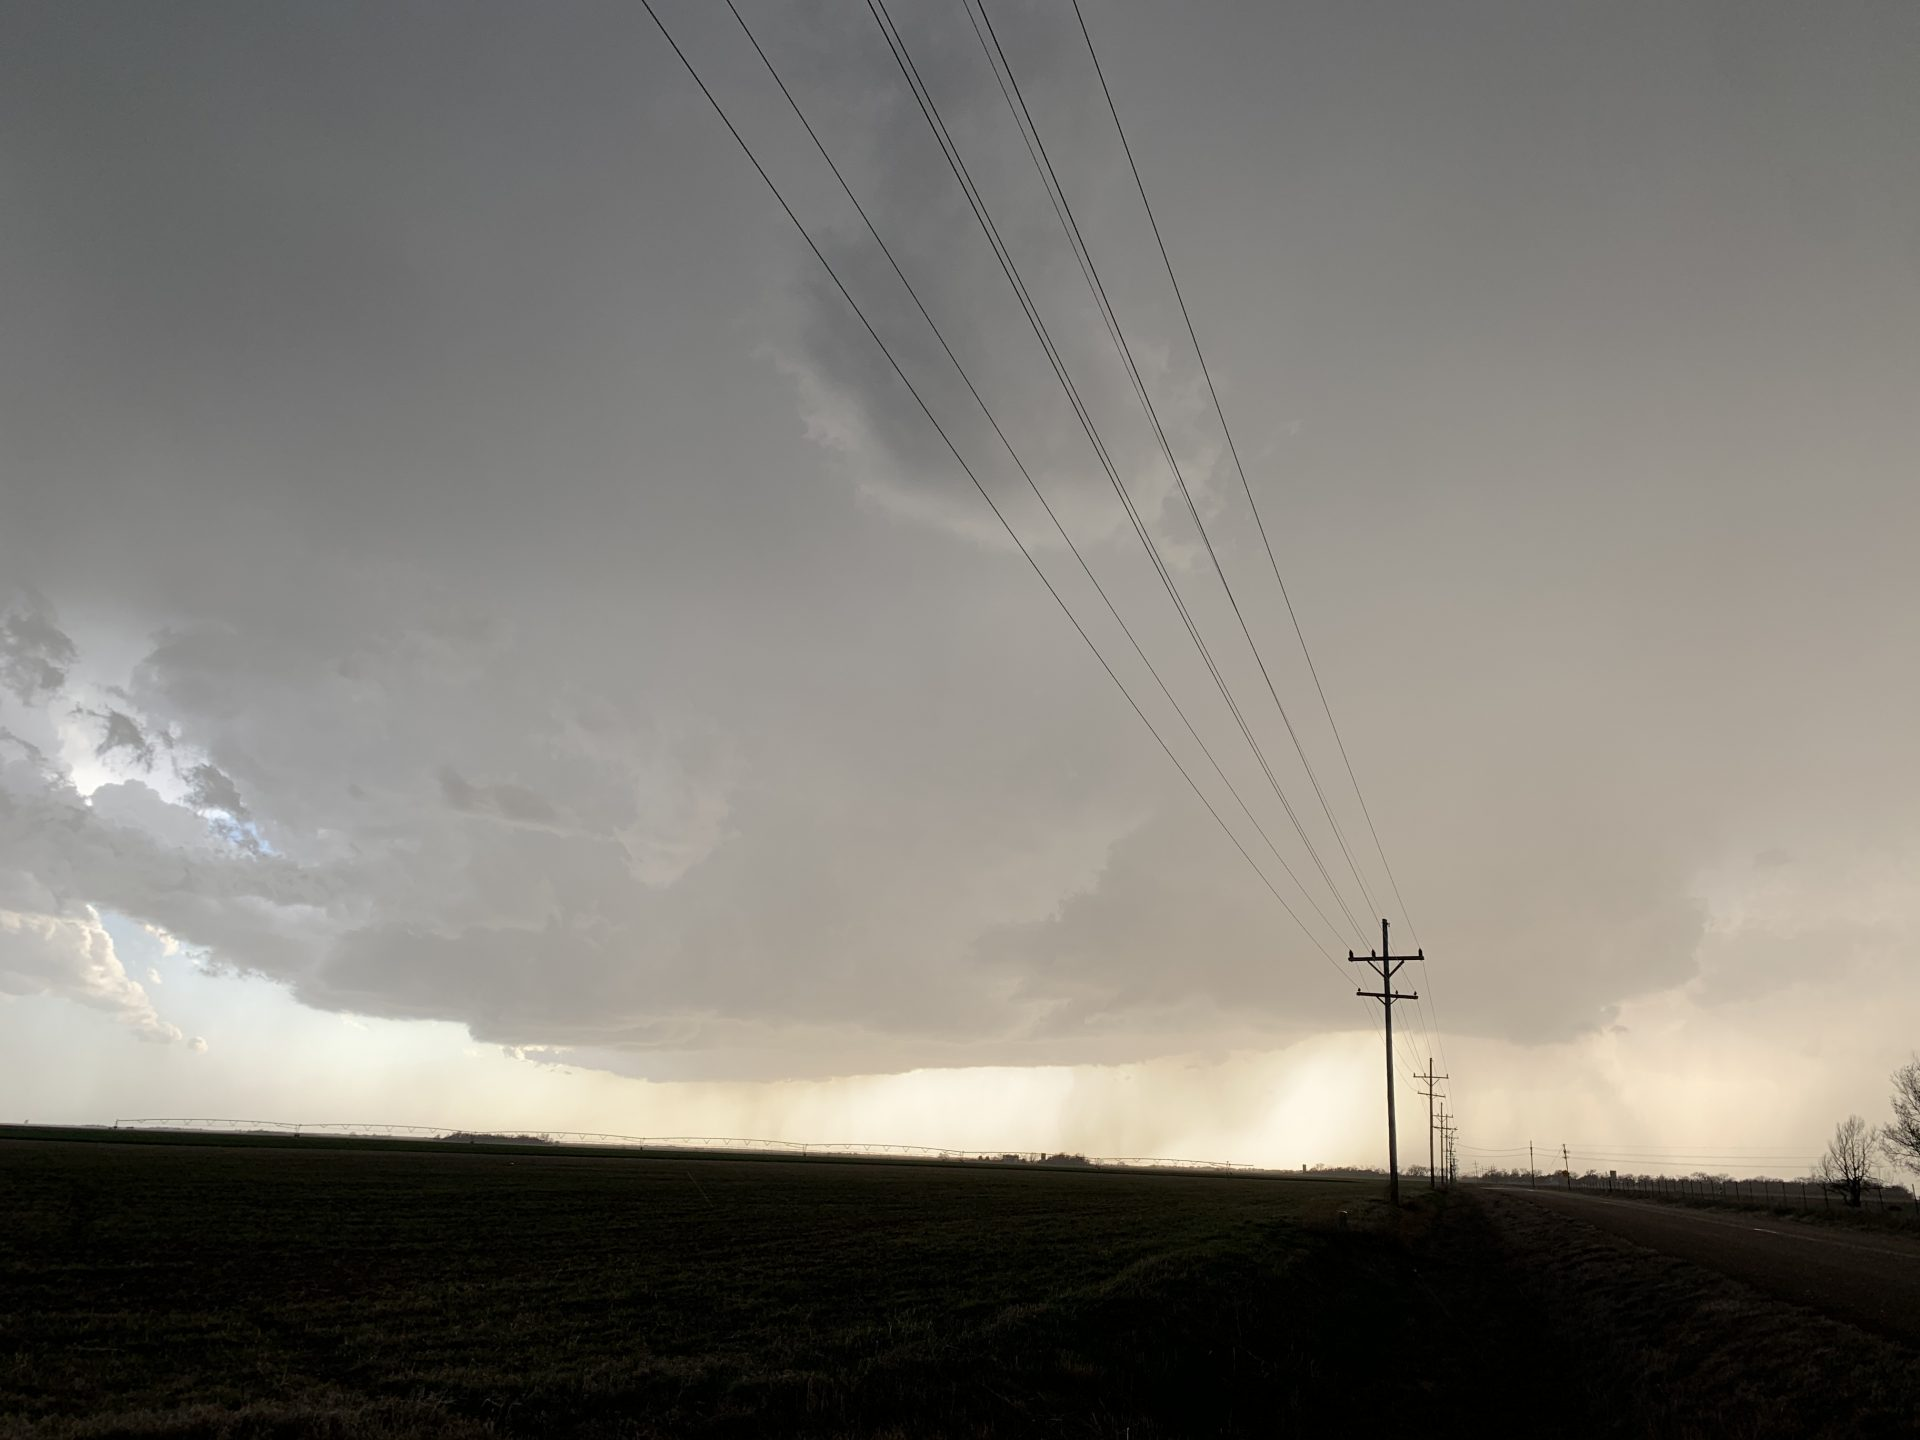 Storm near Garfield, KS is starting to look a bit more organized!